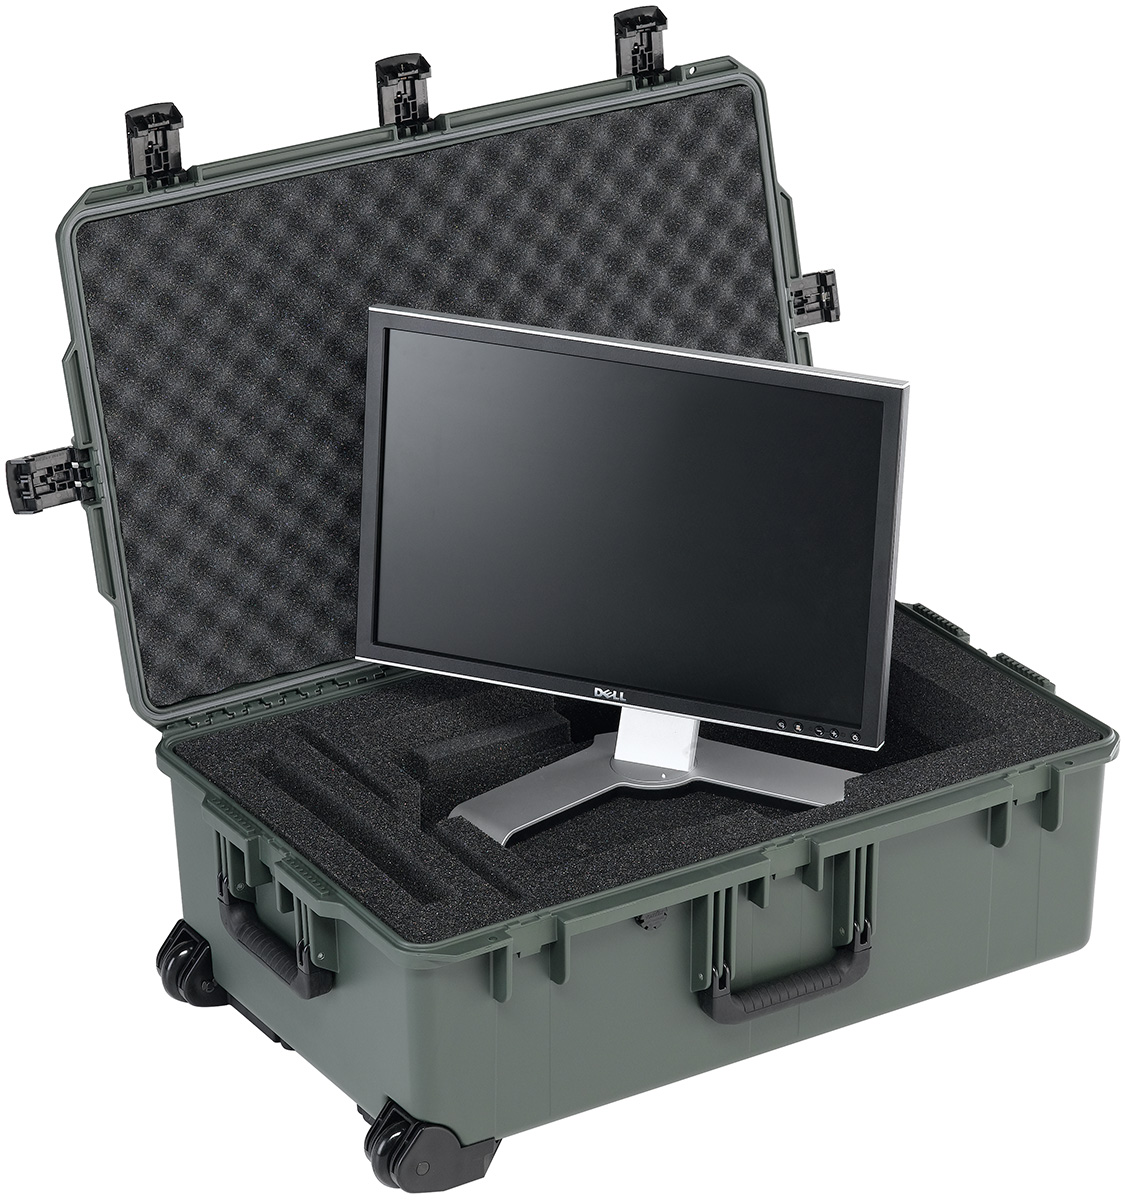 pelican peli products 472 DELL MON 22 usa made military monitor case